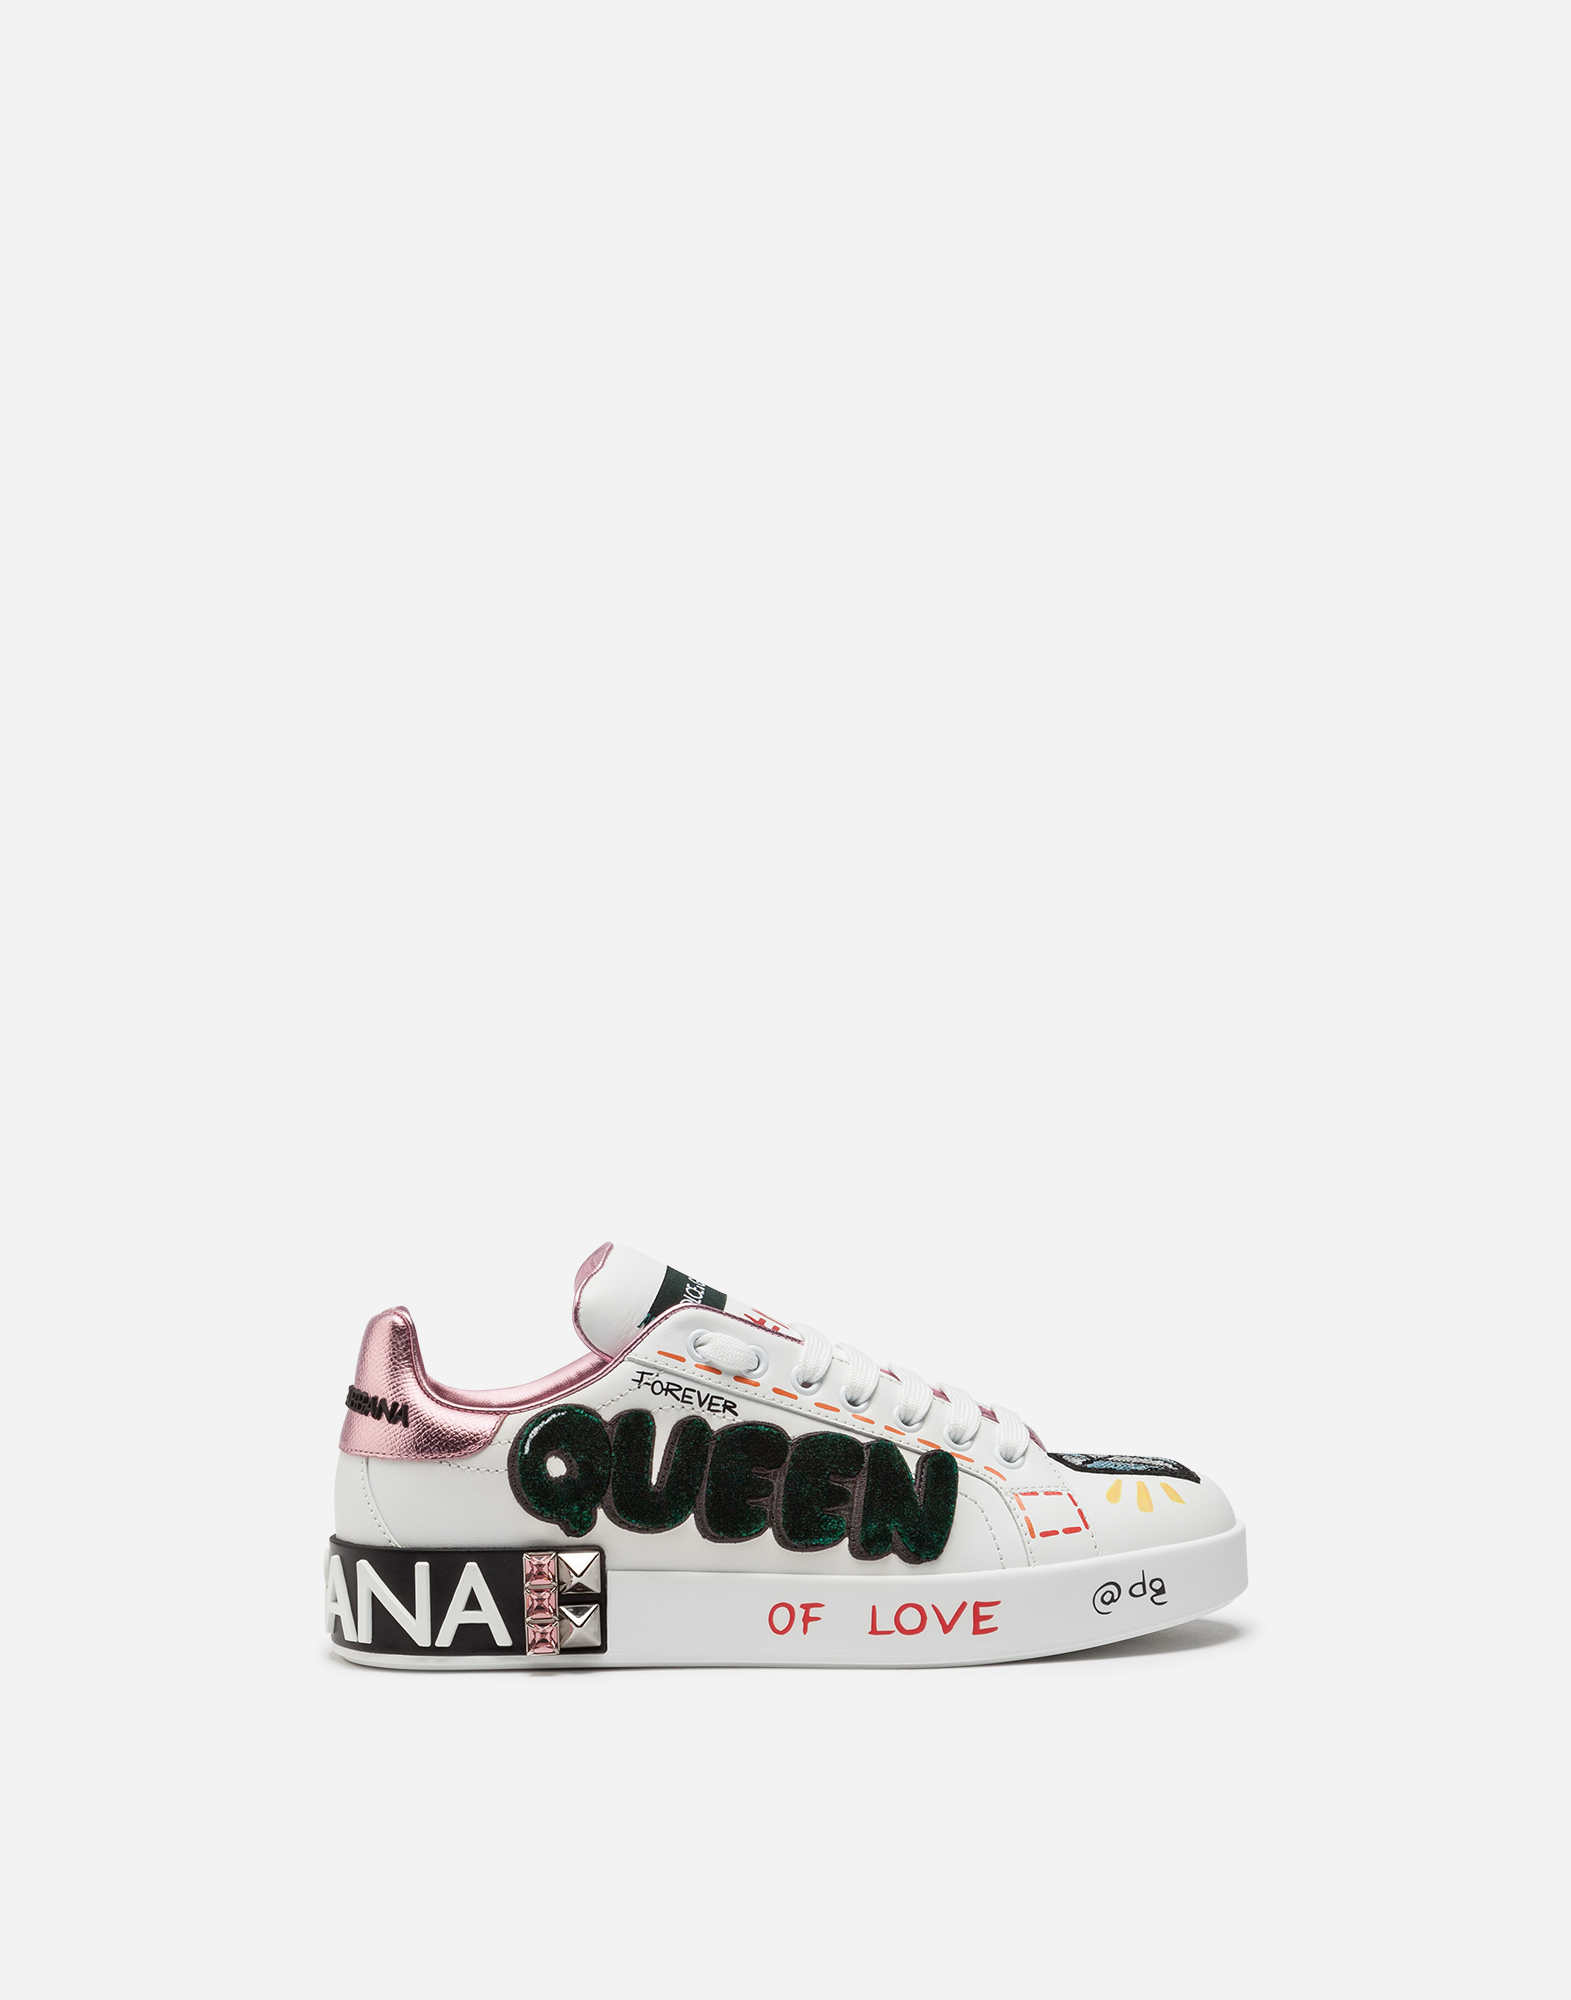 Dolce&Gabbana PORTOFINO SNEAKERS IN PRINTED NAPPA CALFSKIN WITH PATCH AND APPLICATIONS